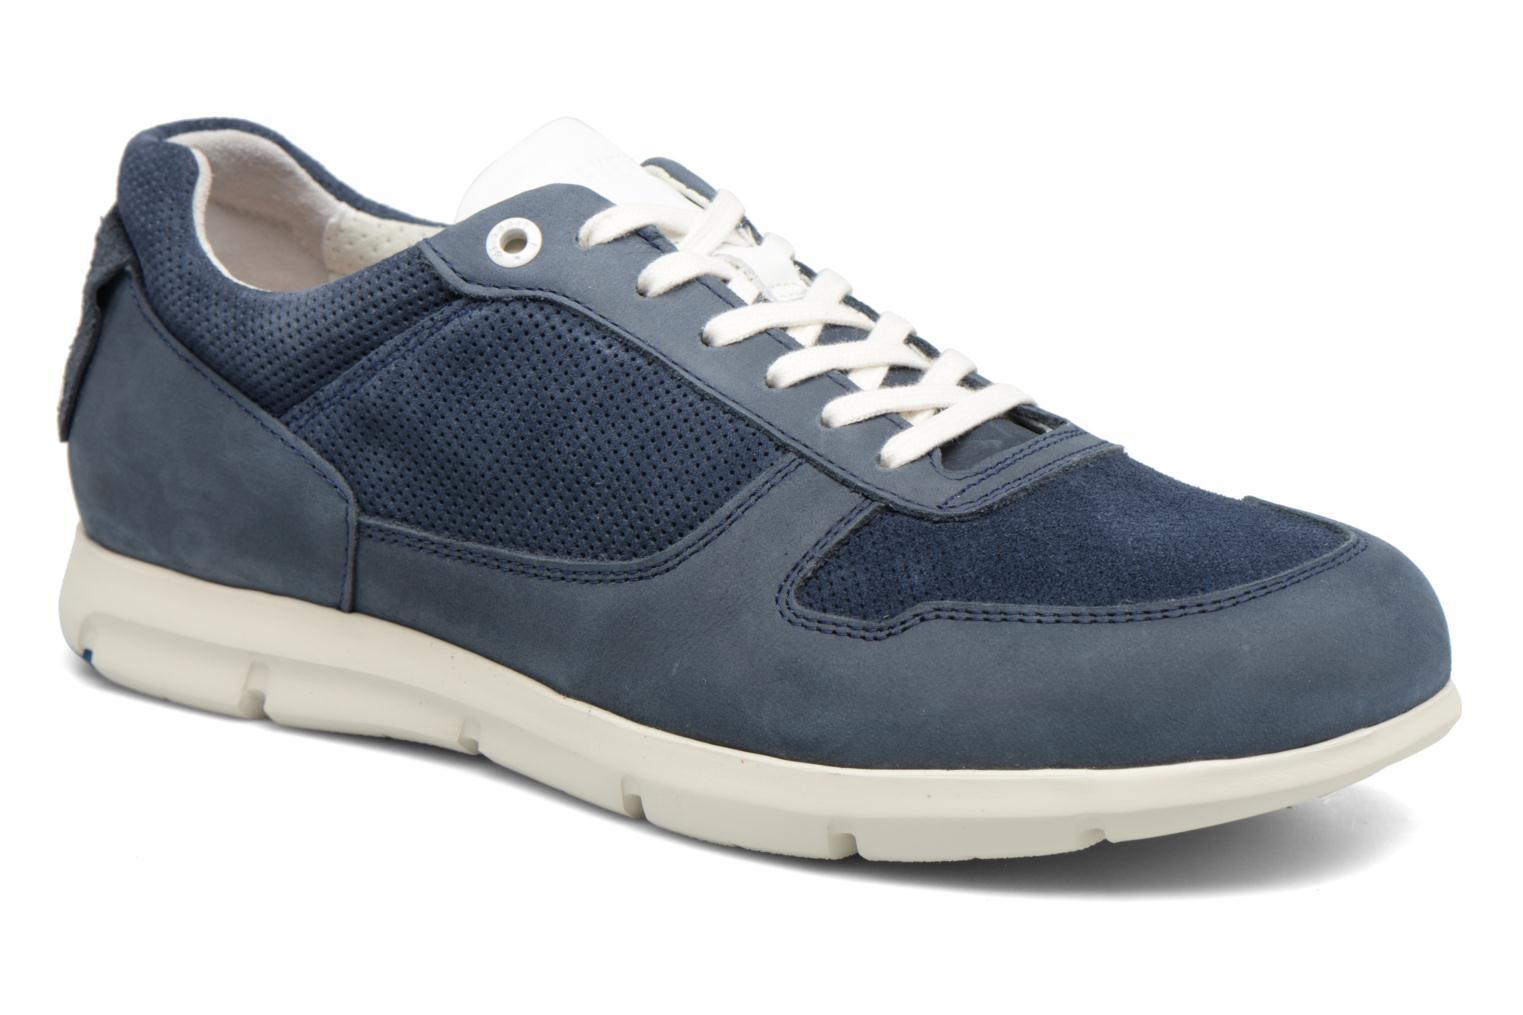 Cincinnati Cuir Naturel Navy